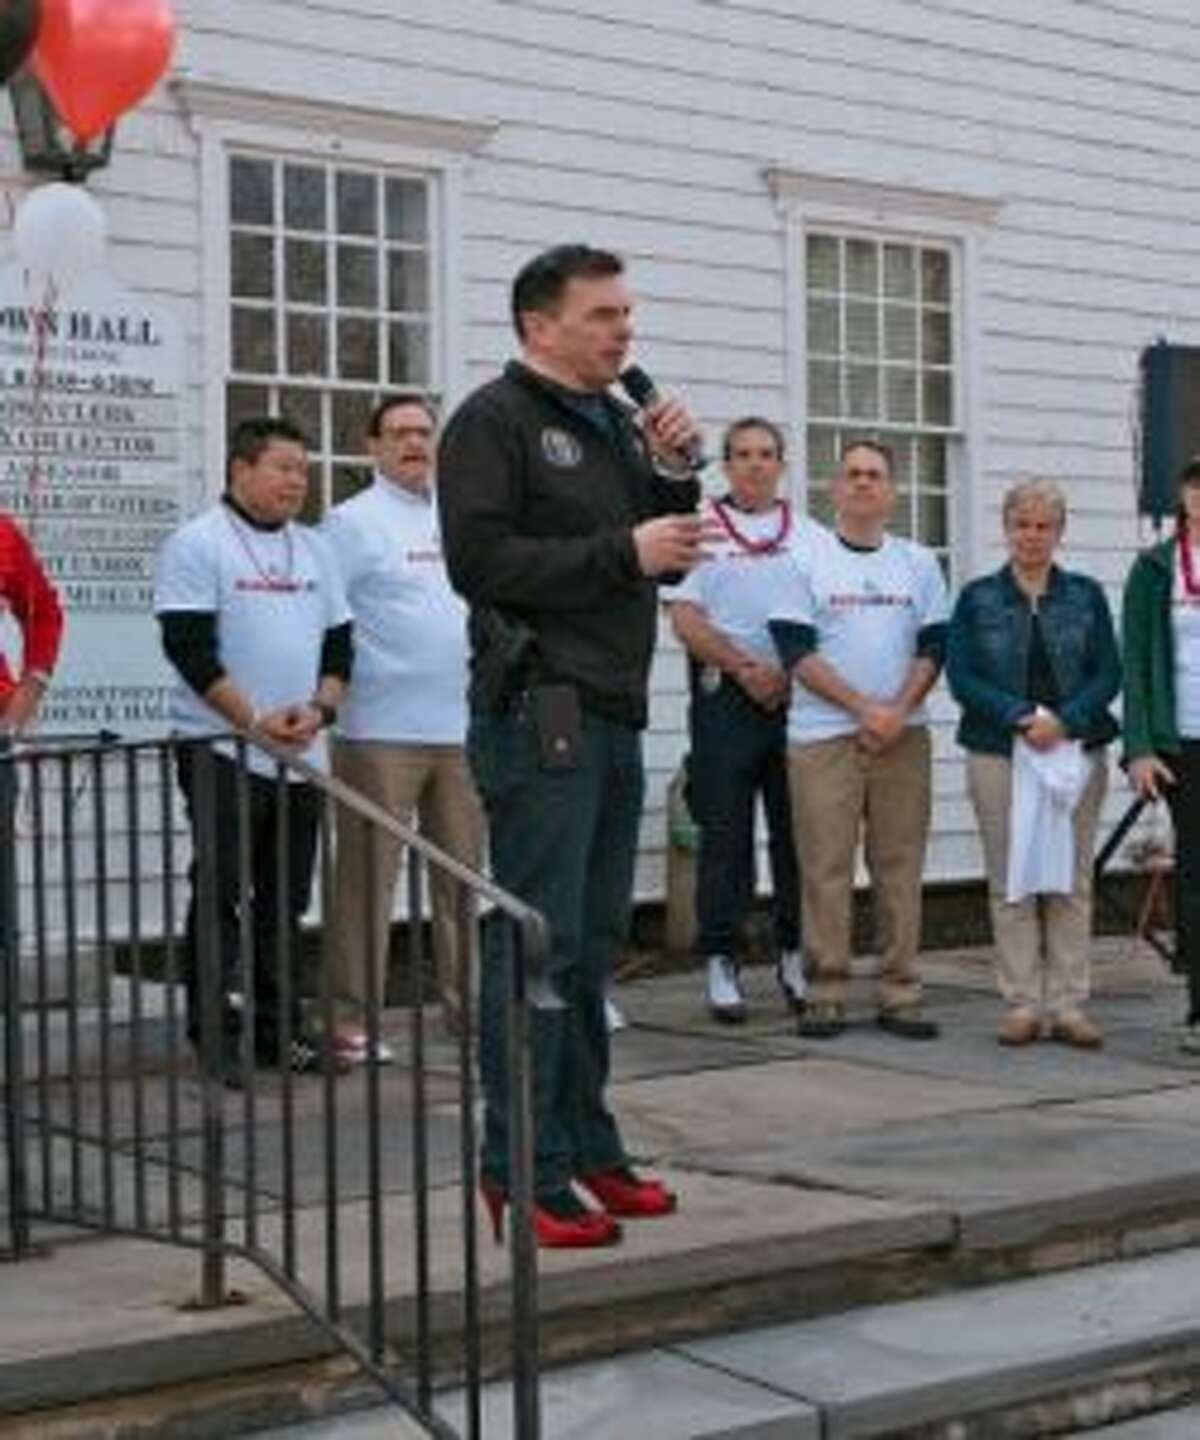 Fairfield Police Chief Gary MacNamara speaks to the crowd last Saturday. - Donovan Doughty for The Center for Family Justice photo